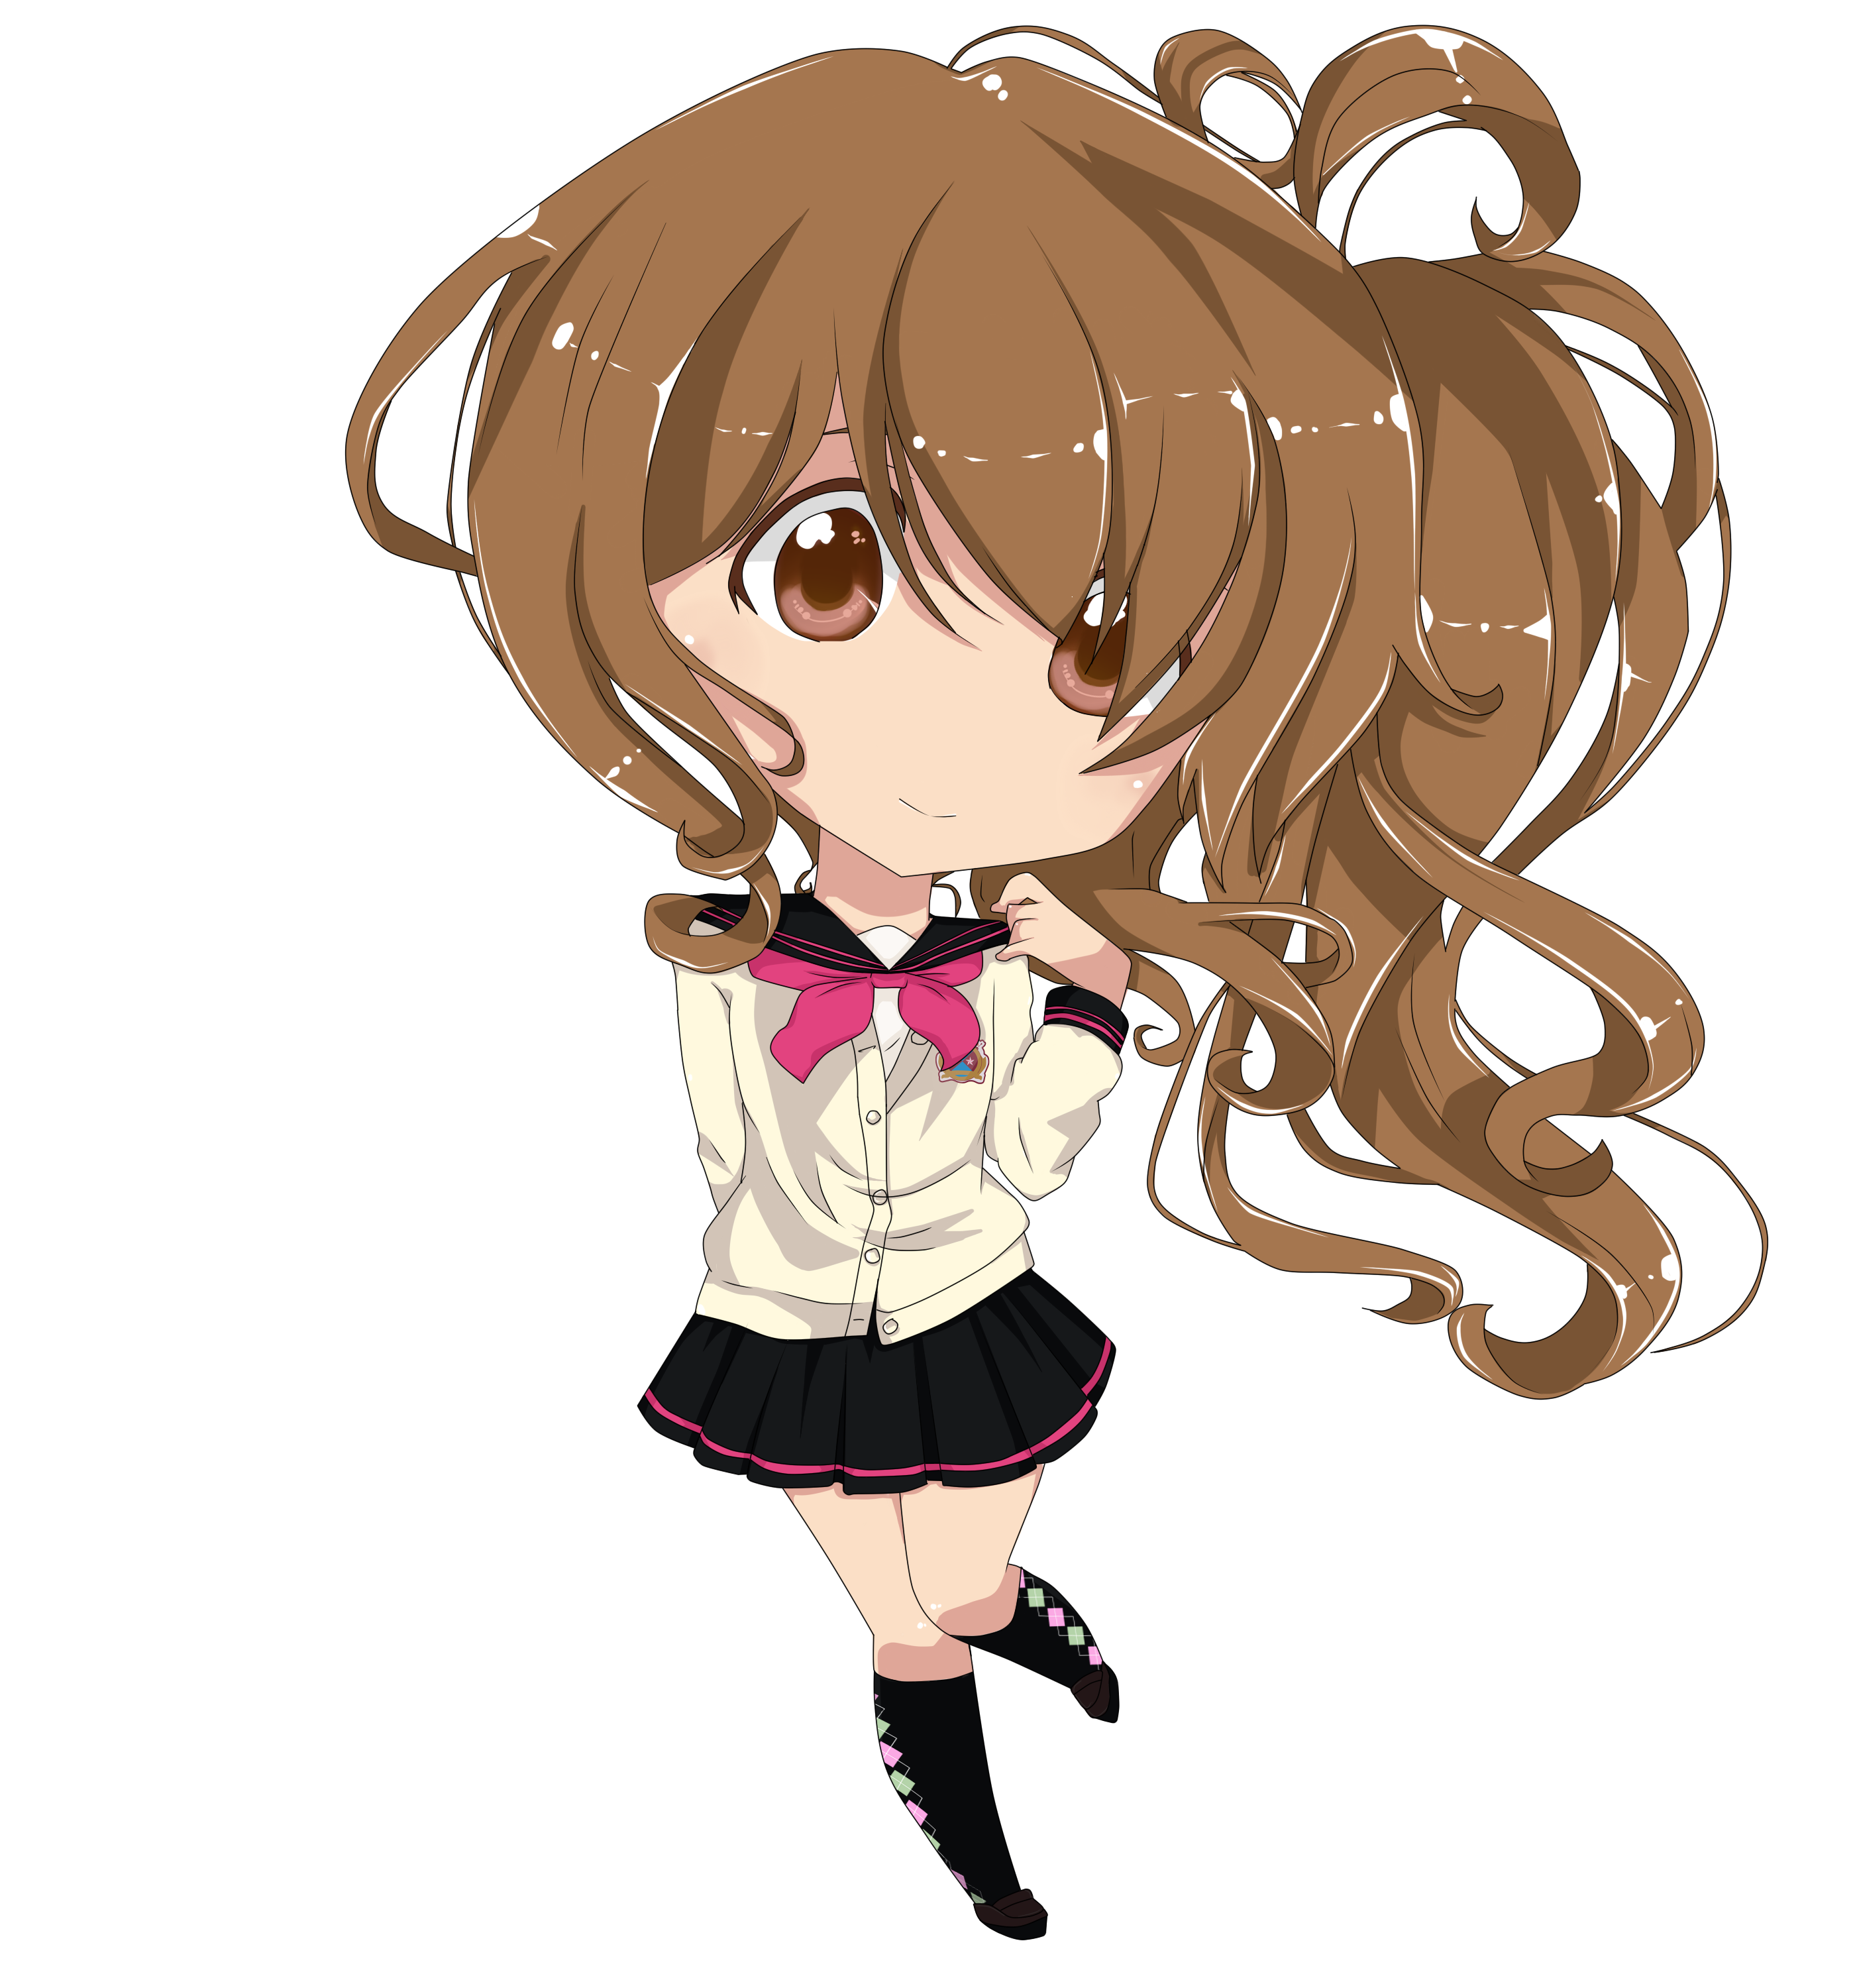 Brothers Conflict chibi  Chibi Anime  Pinterest